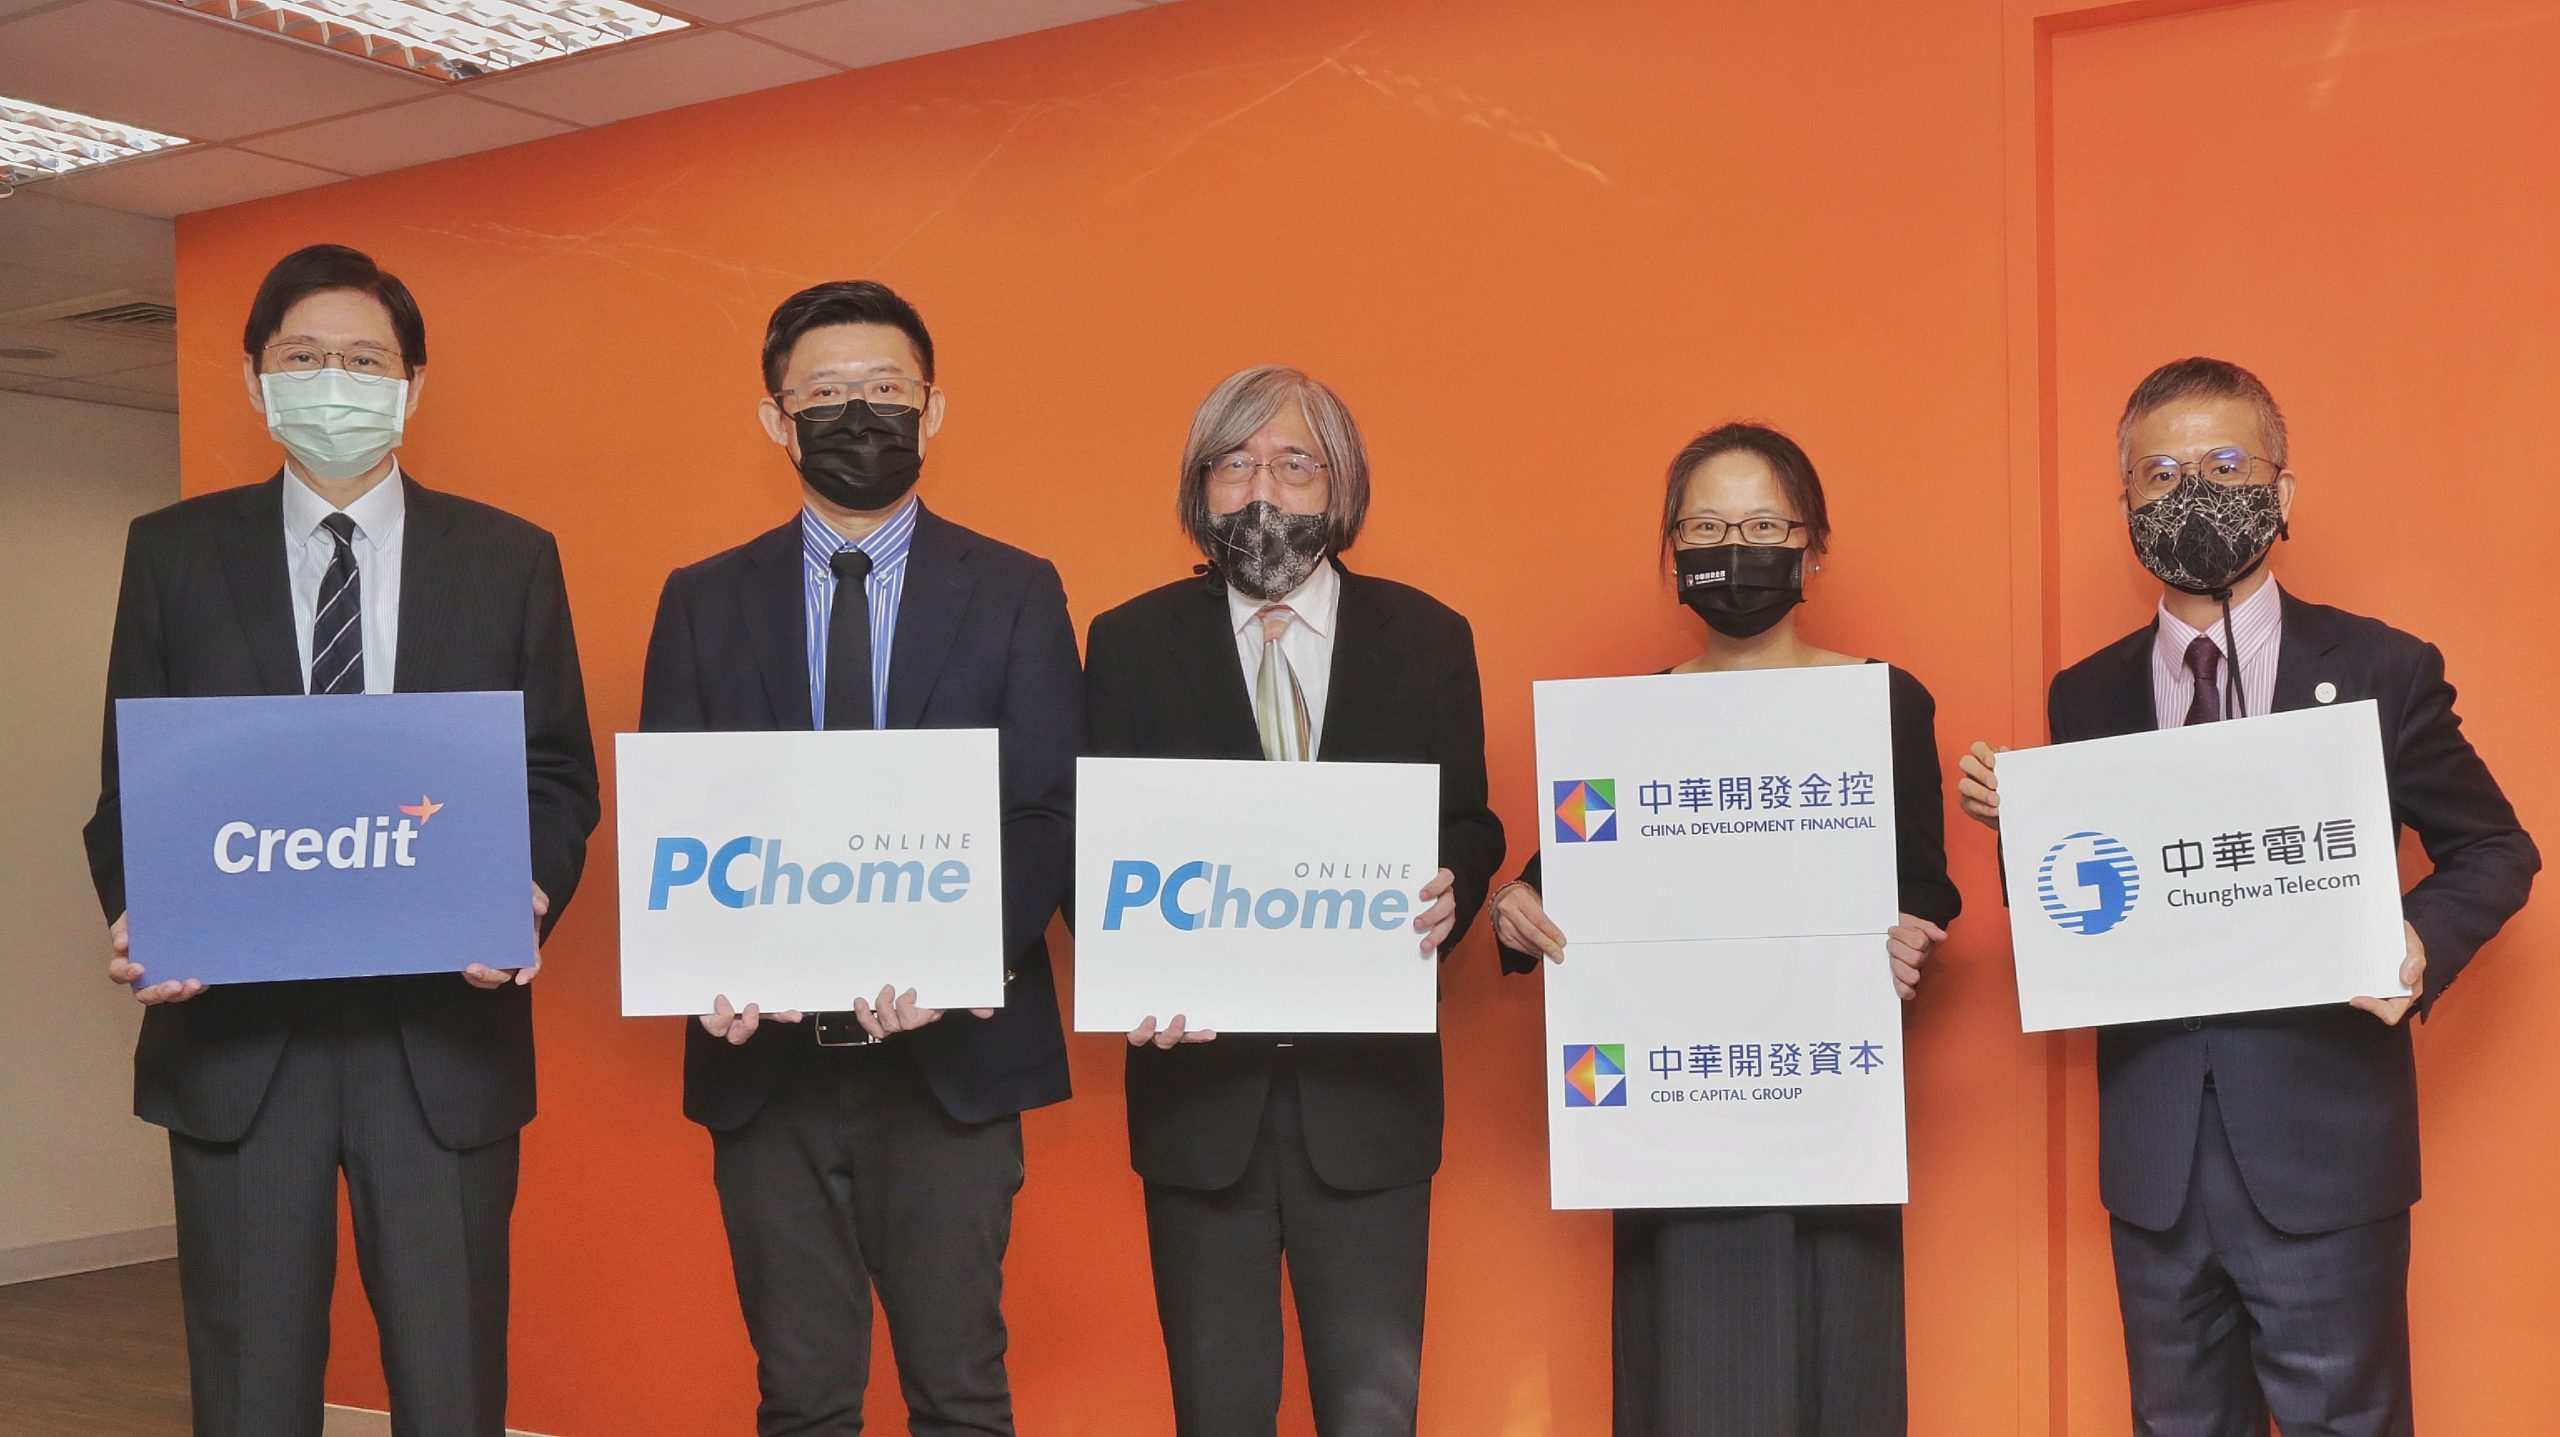 PChome Online, Eyeing Fintech and BNPL Opportunities, Announces NT$1 billion Private Placement to Introduce China Development Financialand Chunghwa Telecom as Strategic Investors